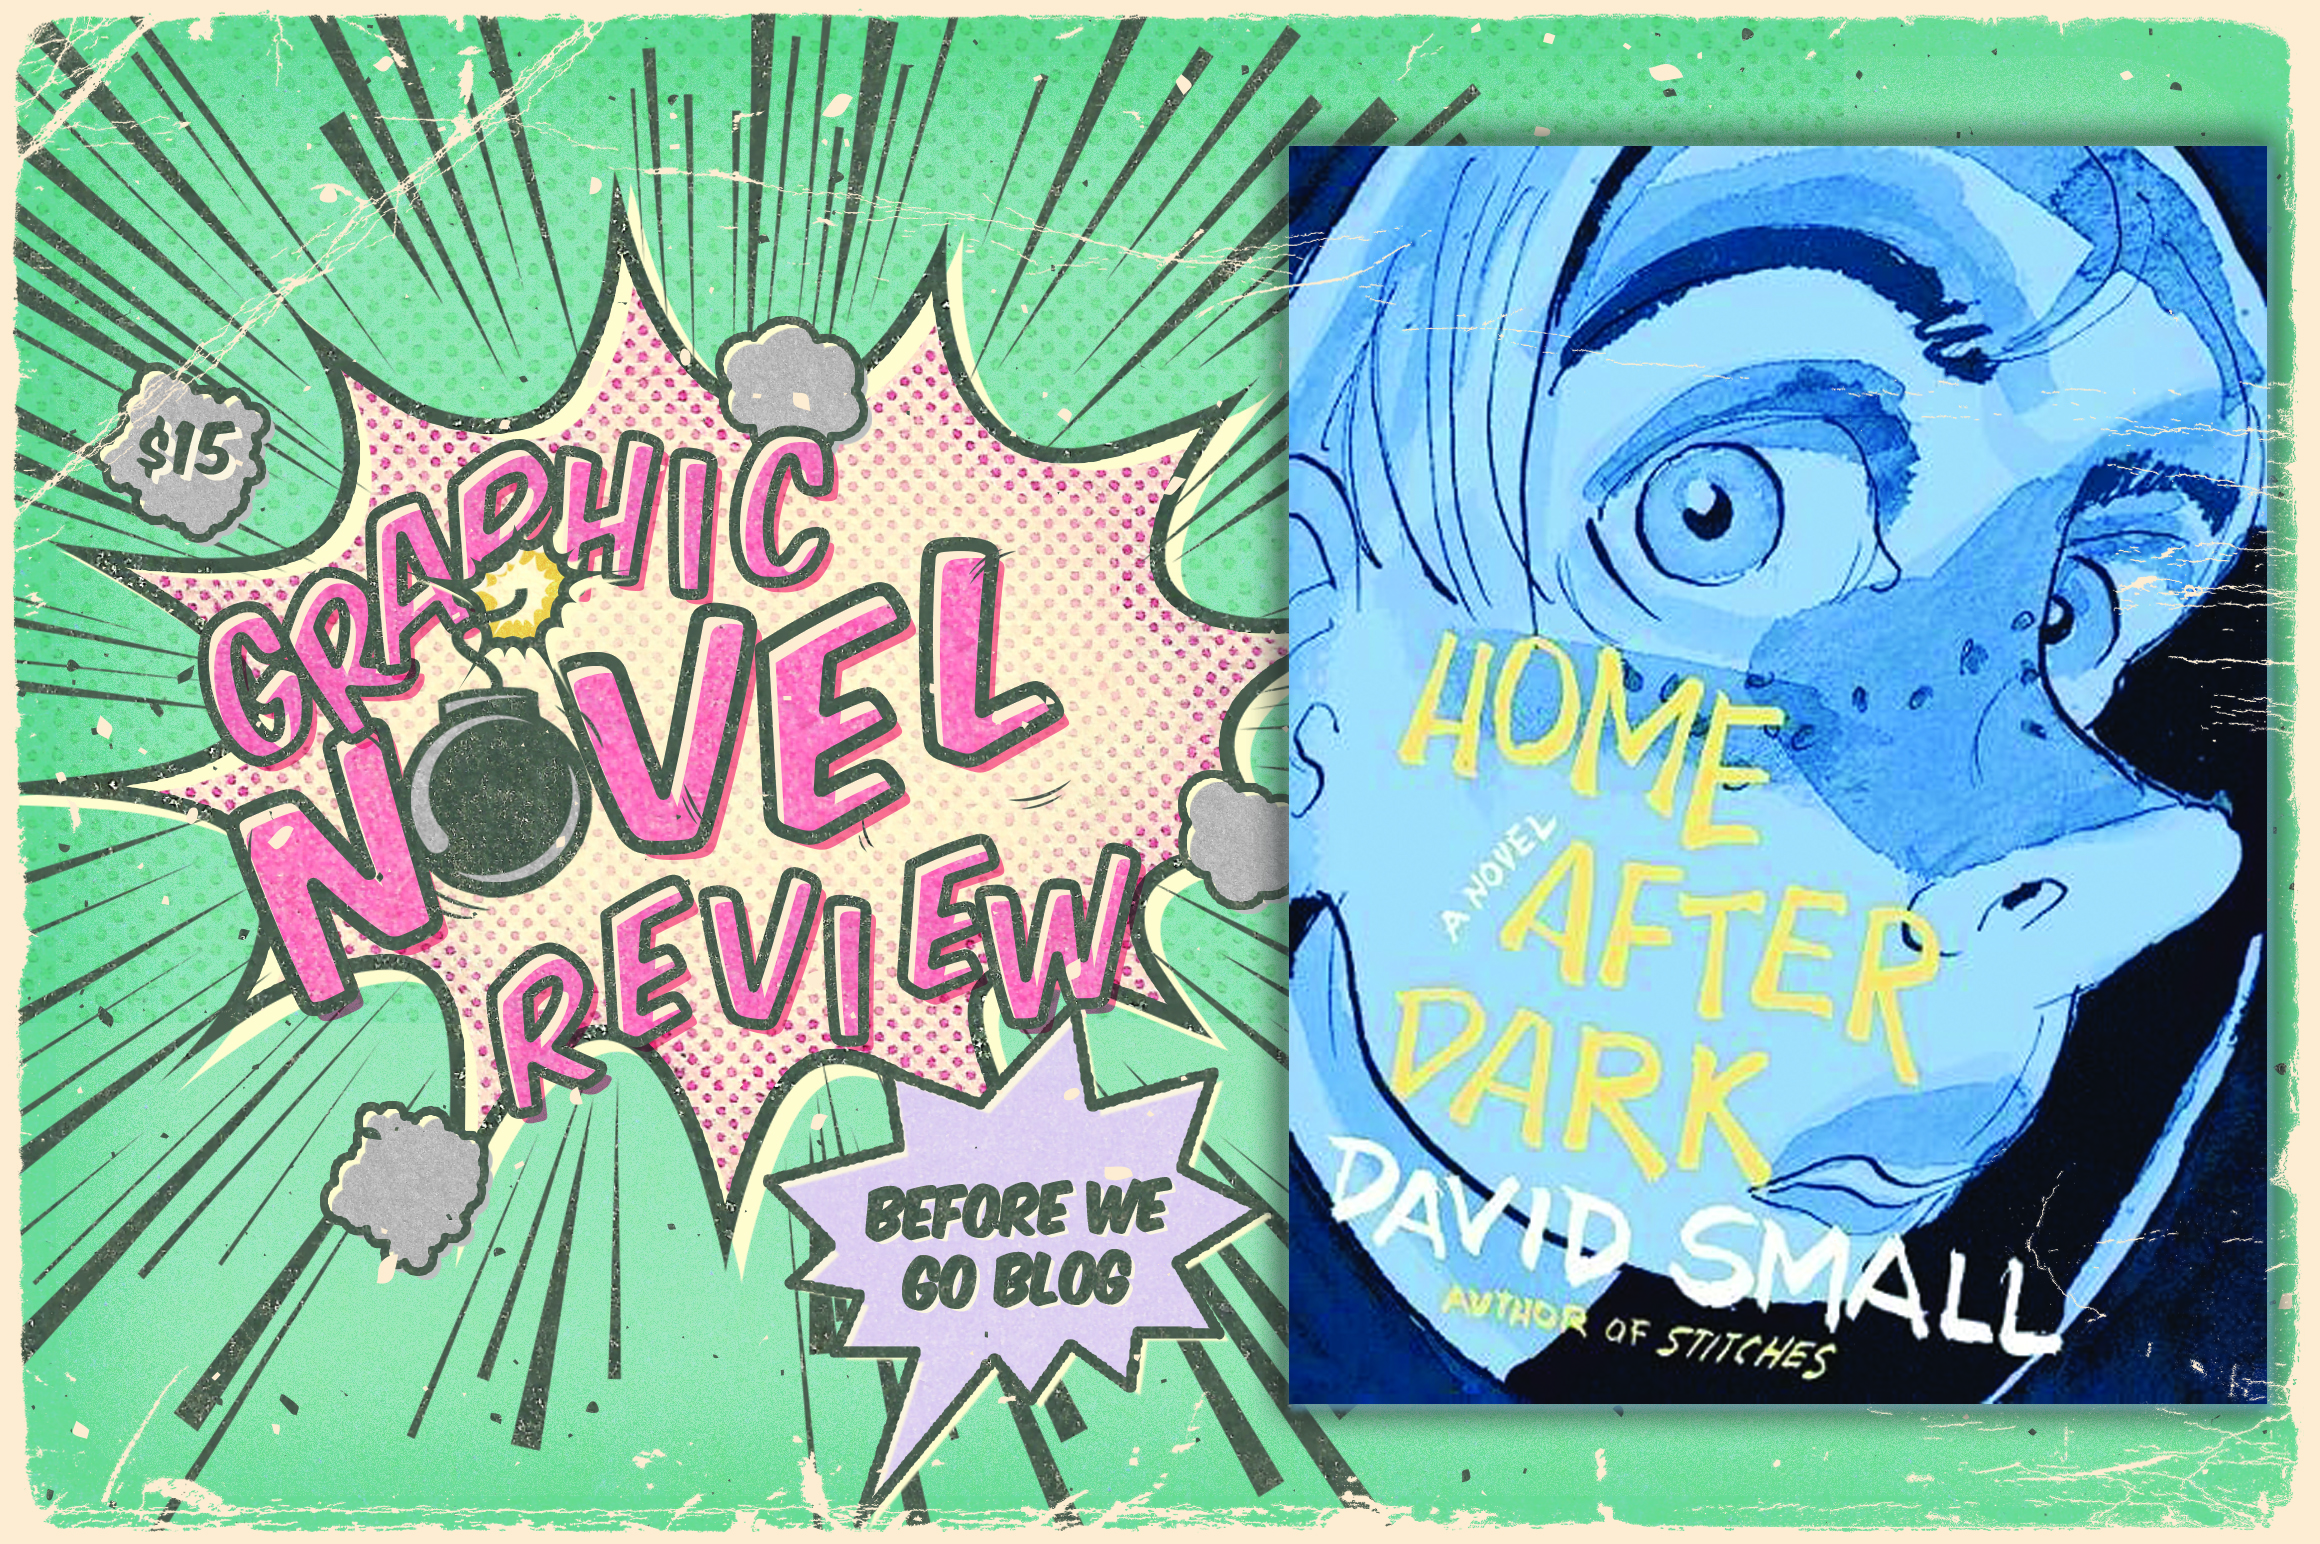 Graphic Novel Review of Home After Dark by David Small